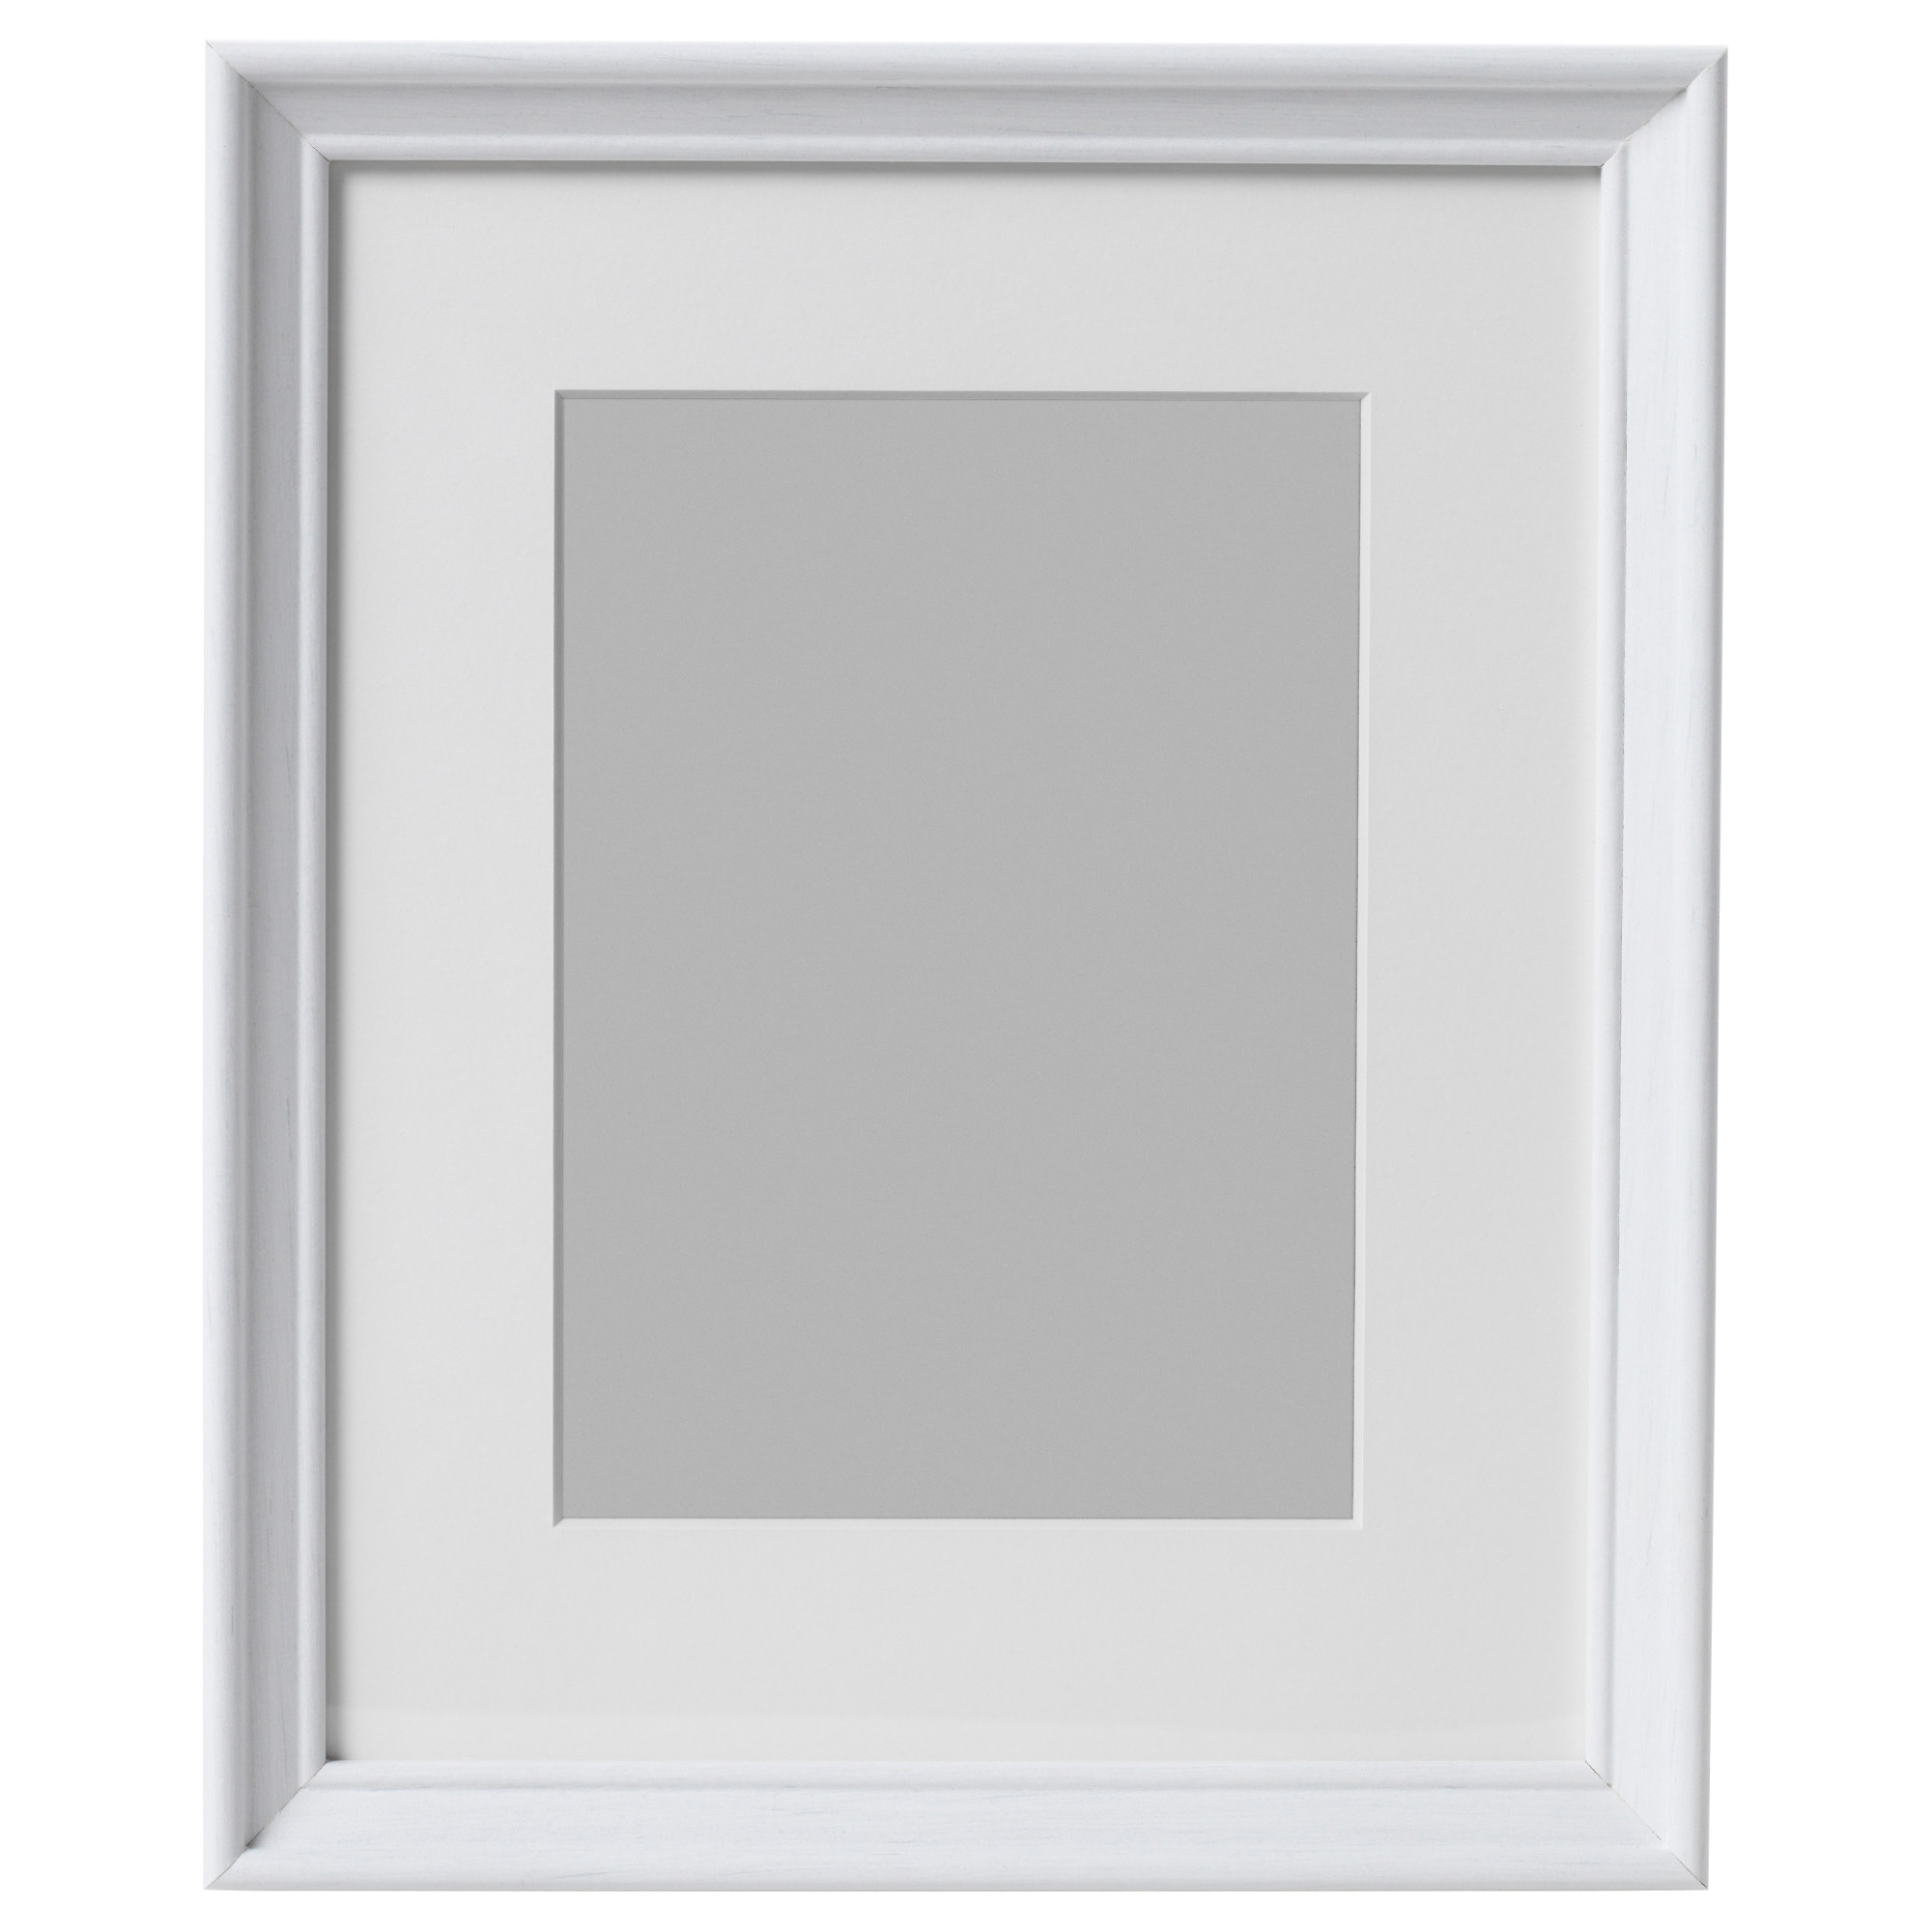 Knoppng frame 12x16 ikea jeuxipadfo Image collections